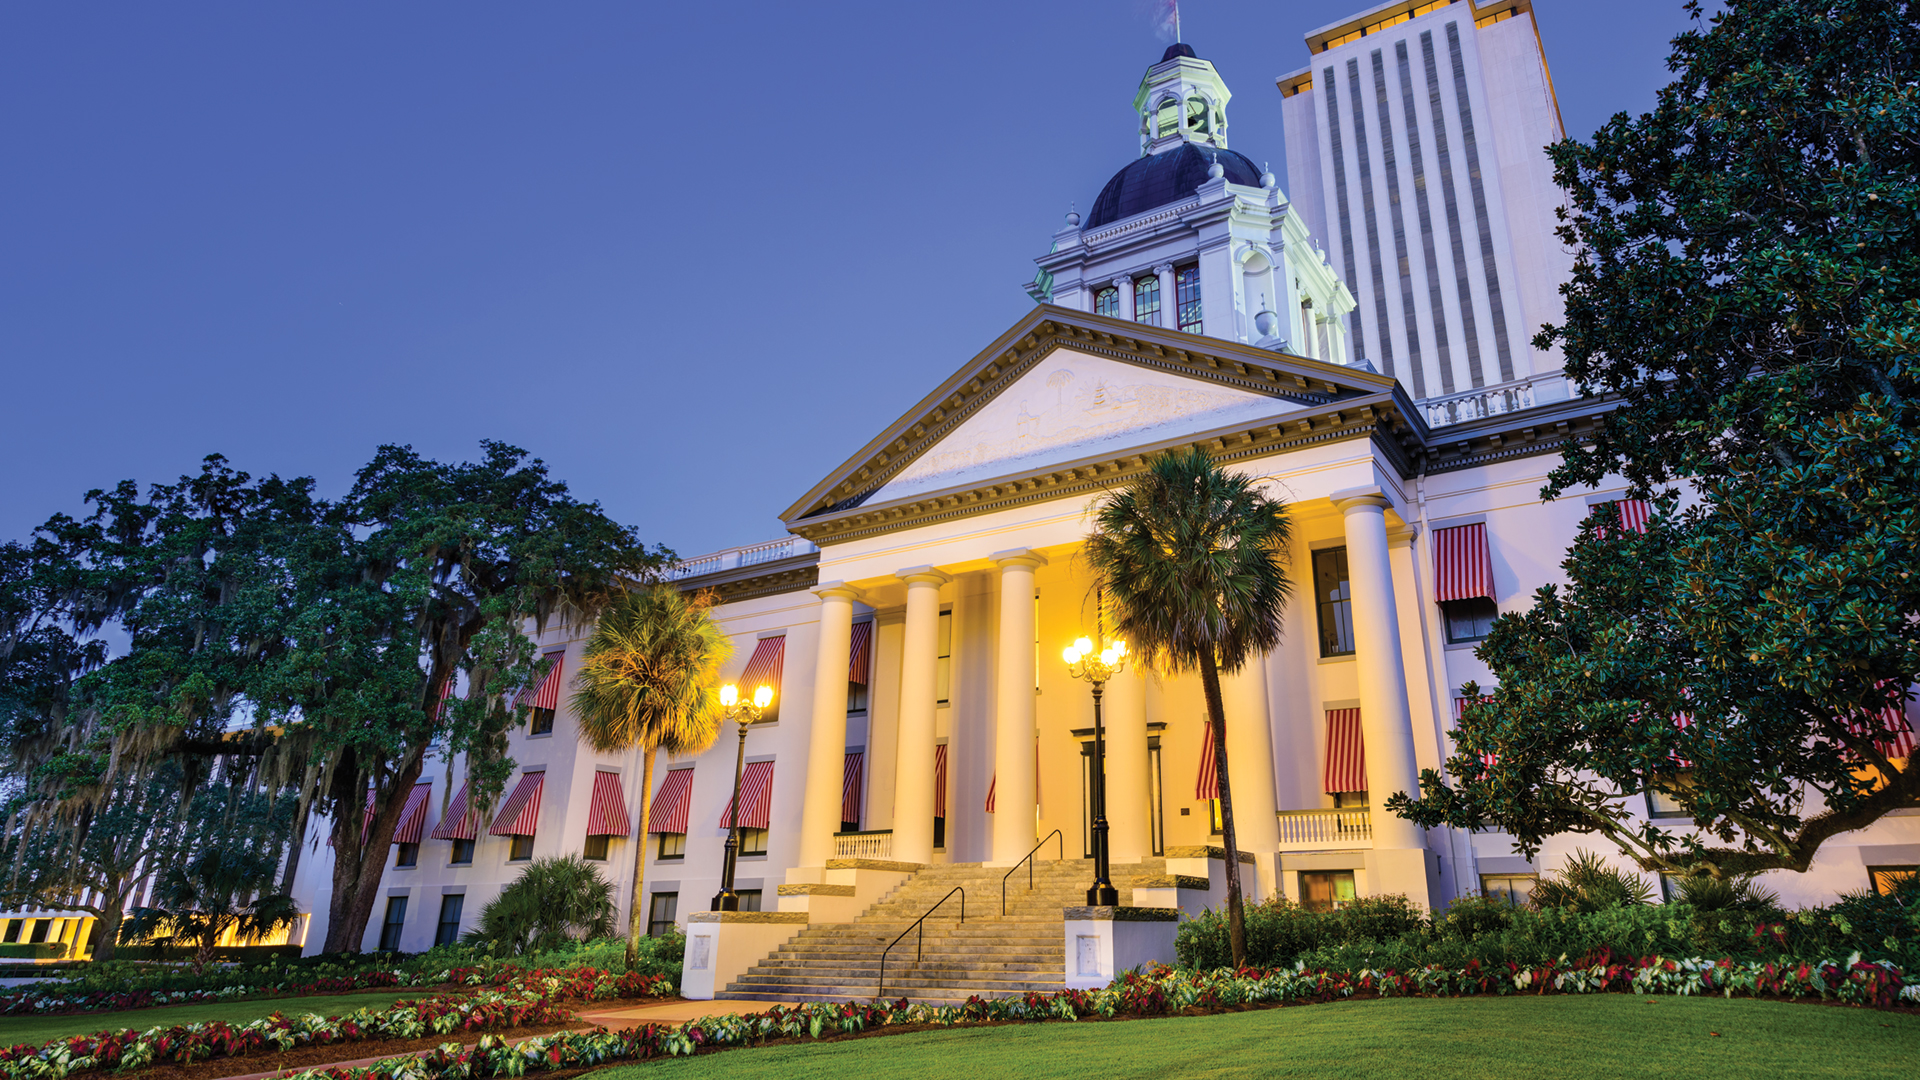 Image of Florida Capital Building